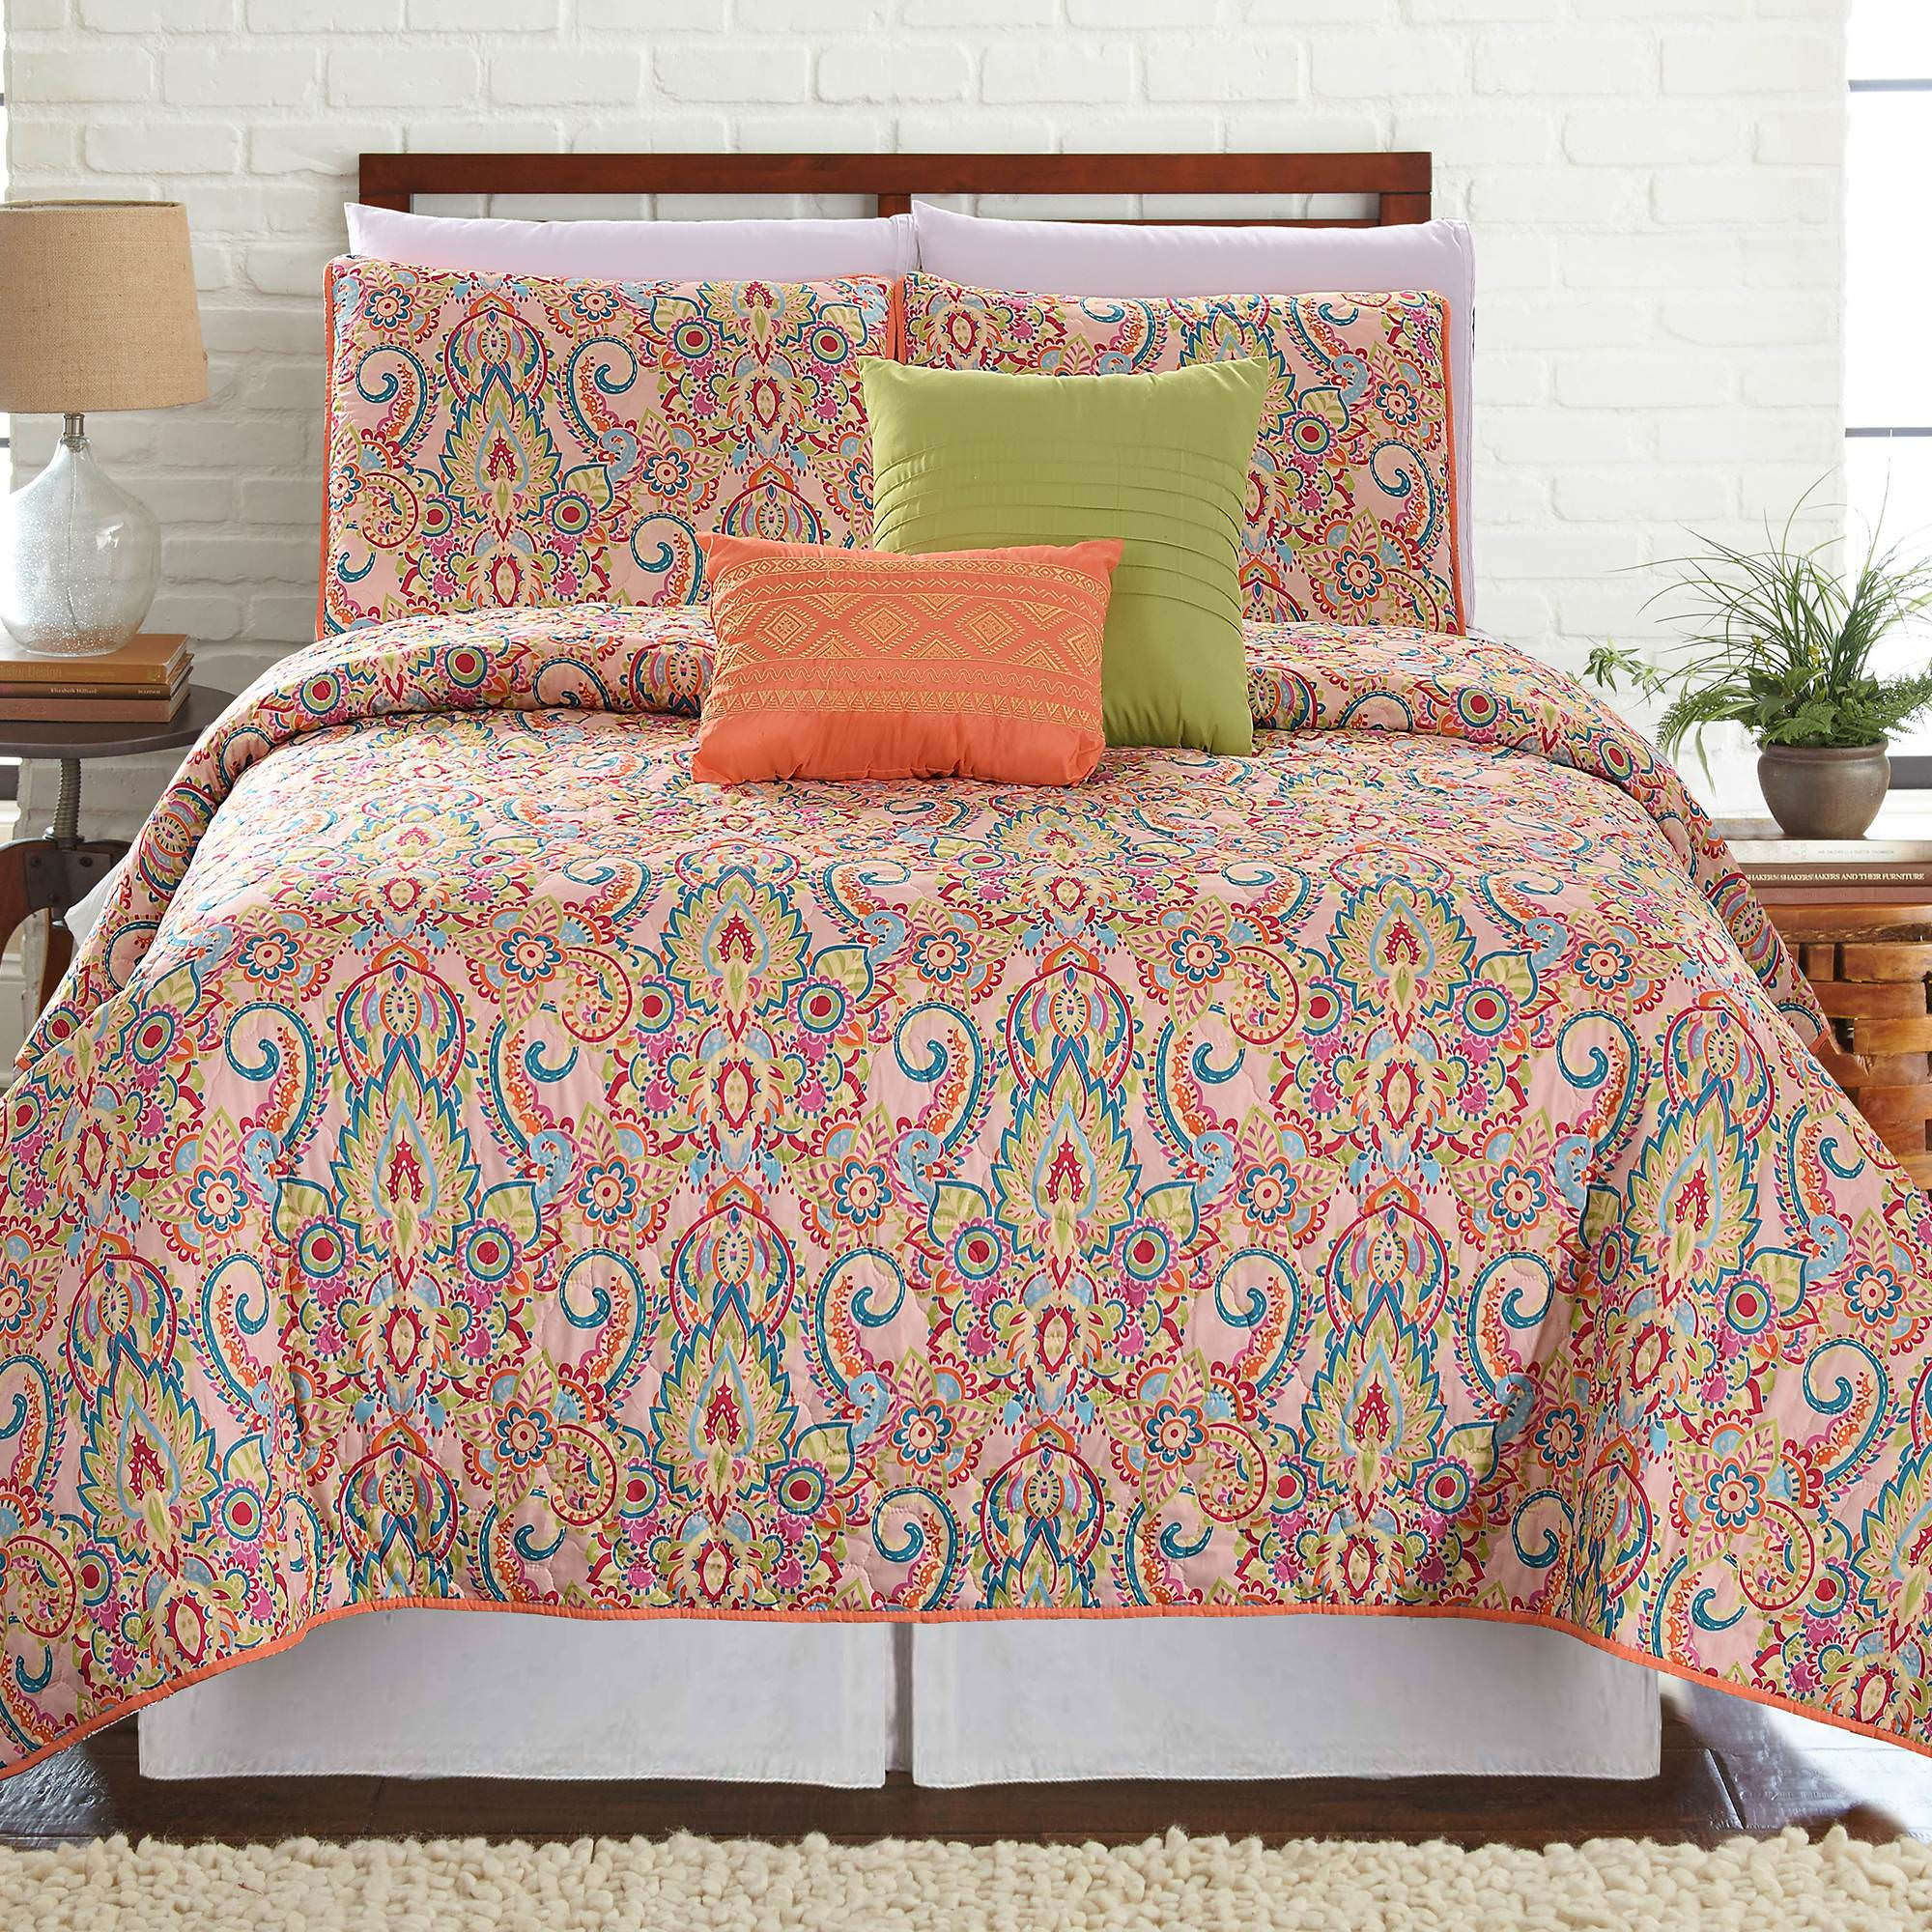 Click here to buy 5 Piece Printed Reversible Quilt Set Casanova by Amrapur Overseas, Inc..